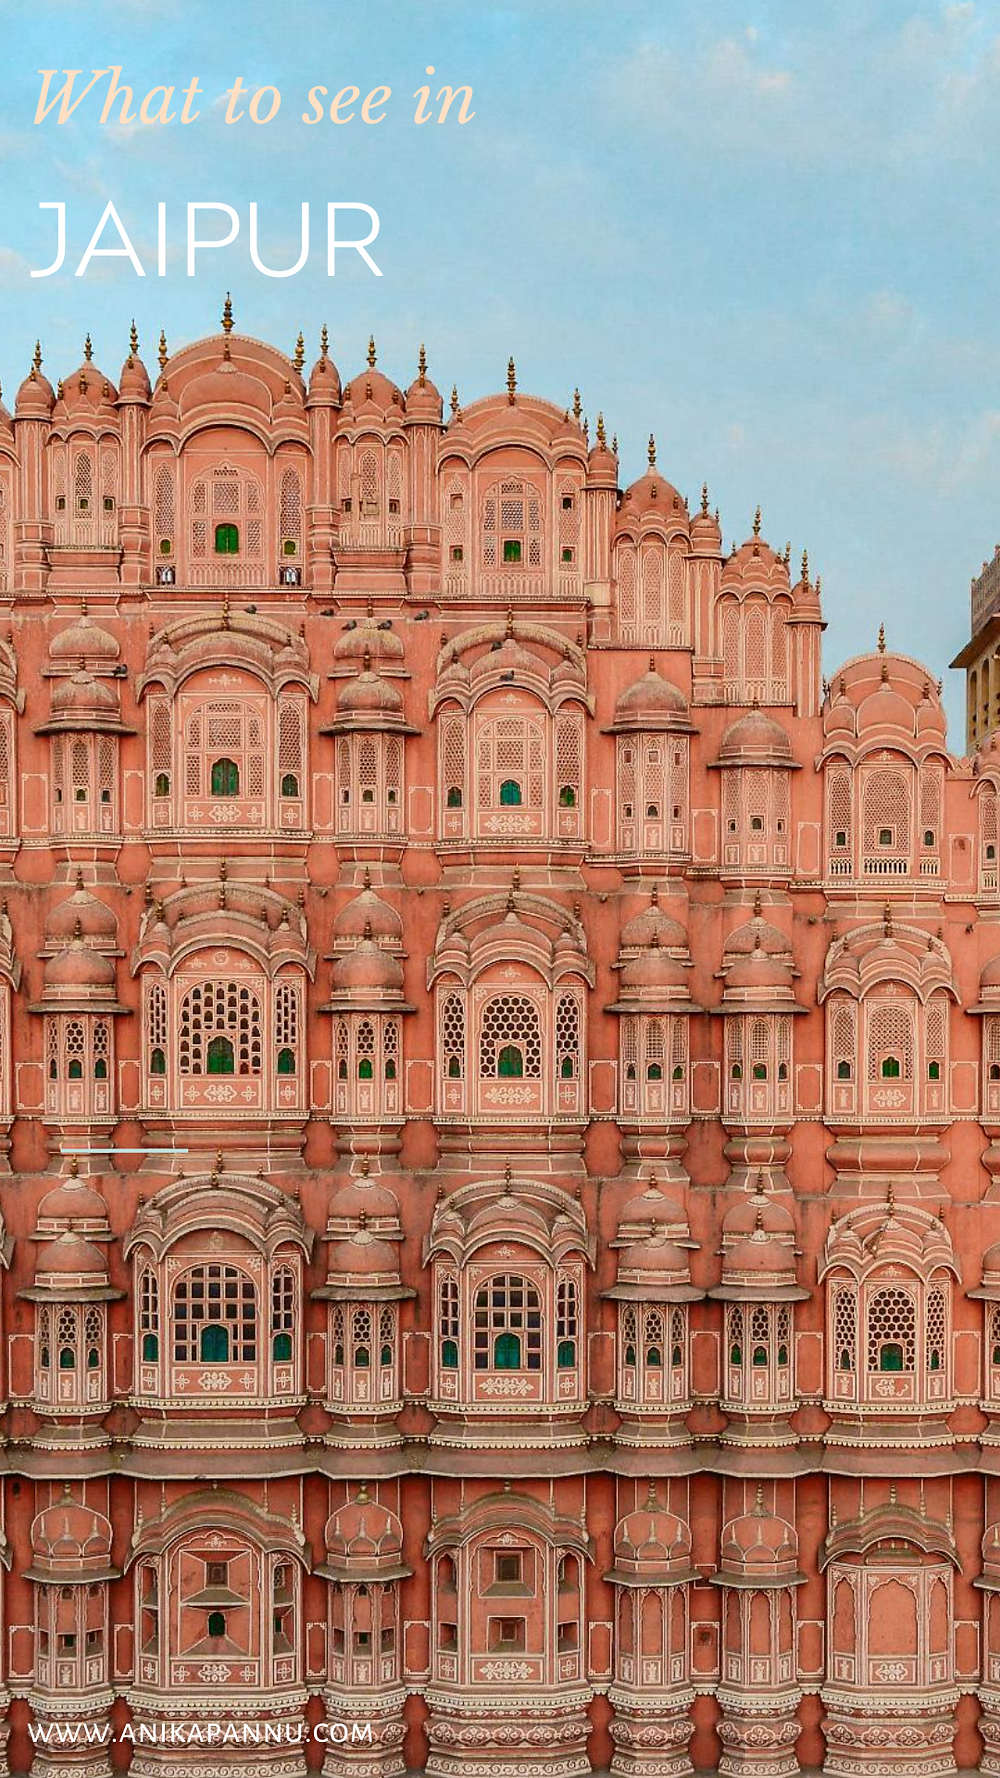 what to do in jaipur, what to see in jaipur, free things to do in jaipur, must see jaipur, instagram places jaipur, what to do in jaipur